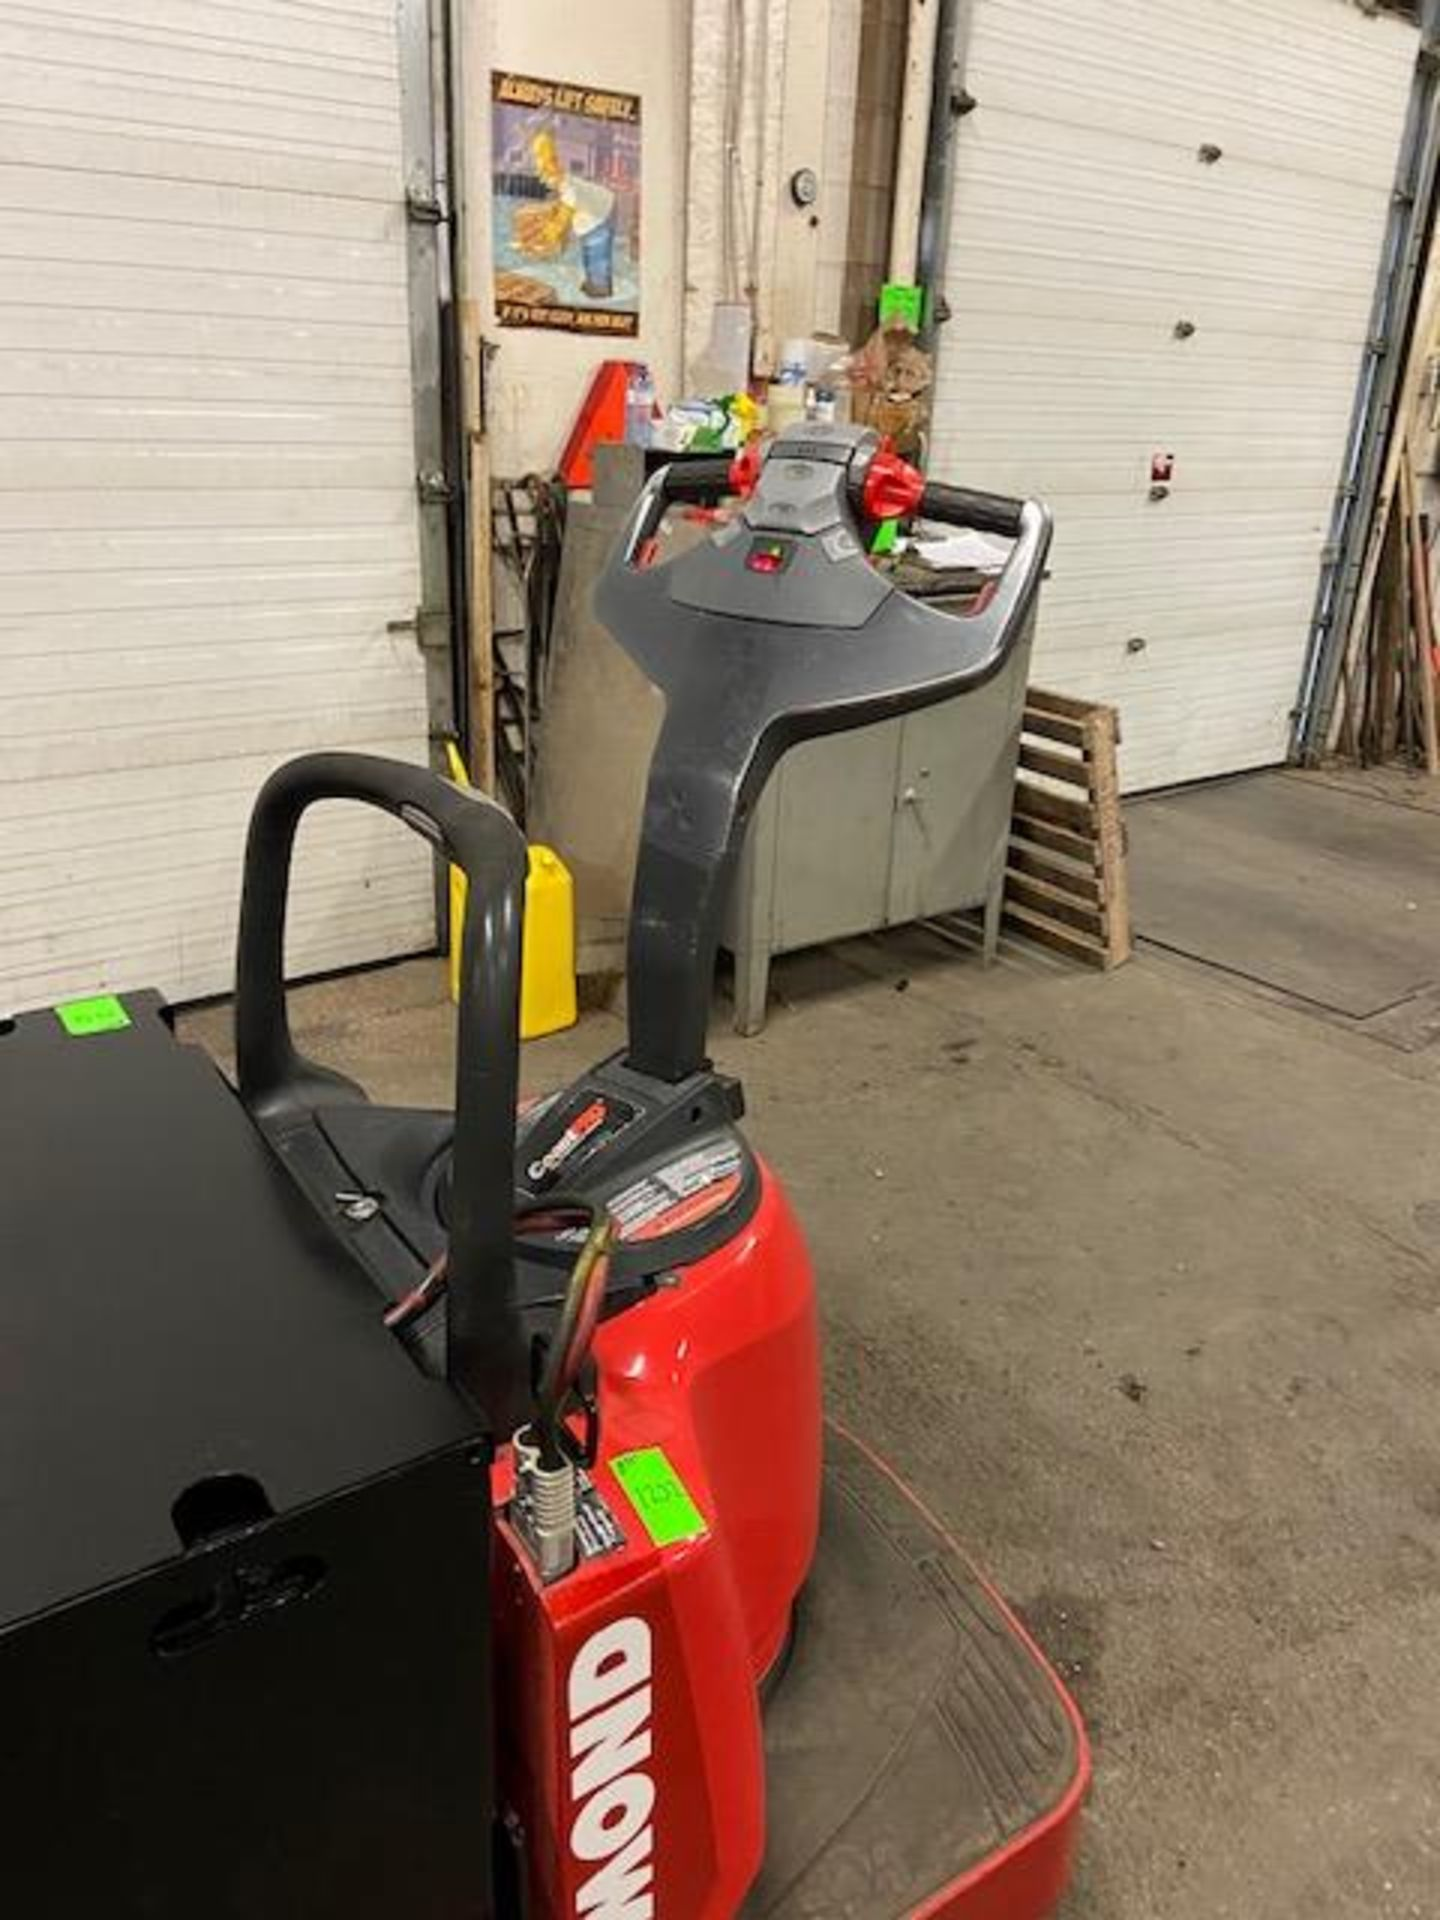 Raymond Electric Ride on Powered Pallet Cart Lift 8000lbs capacity 8' Long NICE - Image 2 of 3